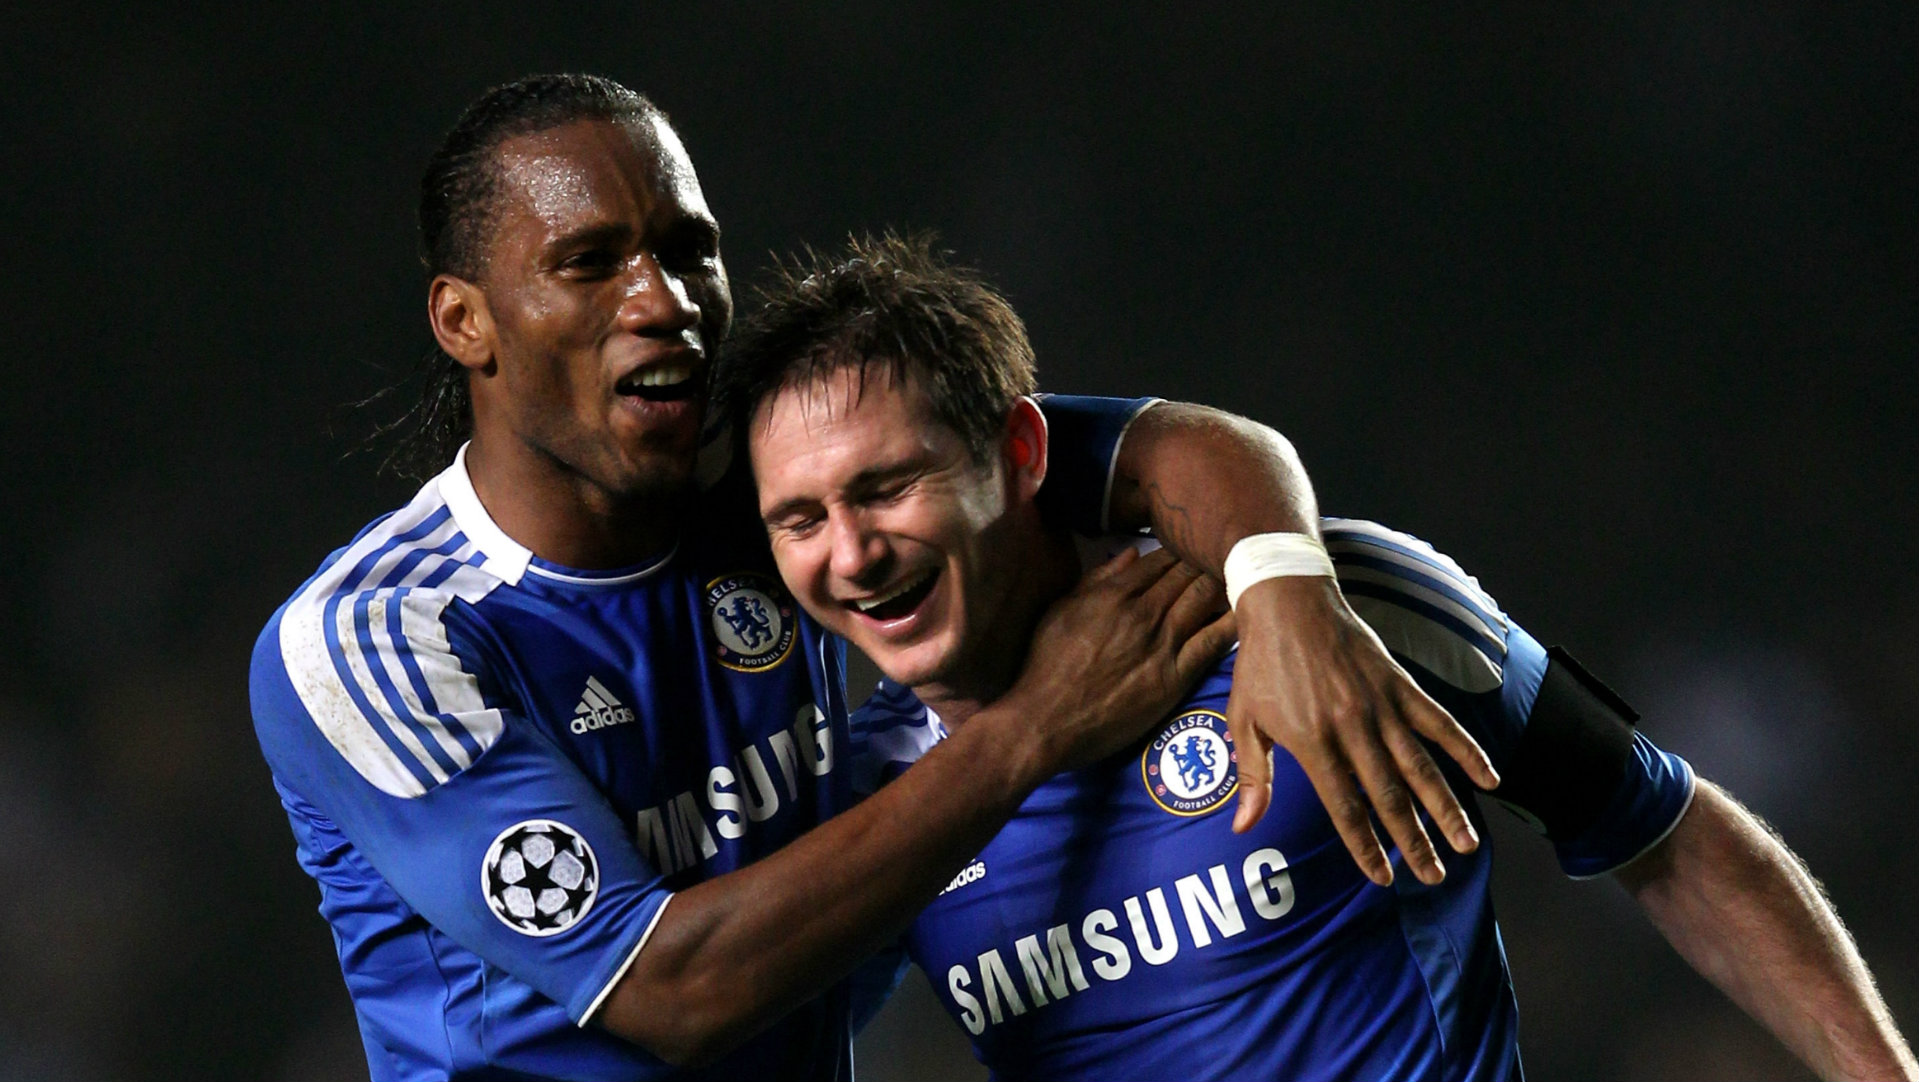 Mount reveals how Drogba and Chelsea's historic 2012 win provides Champions League inspiration